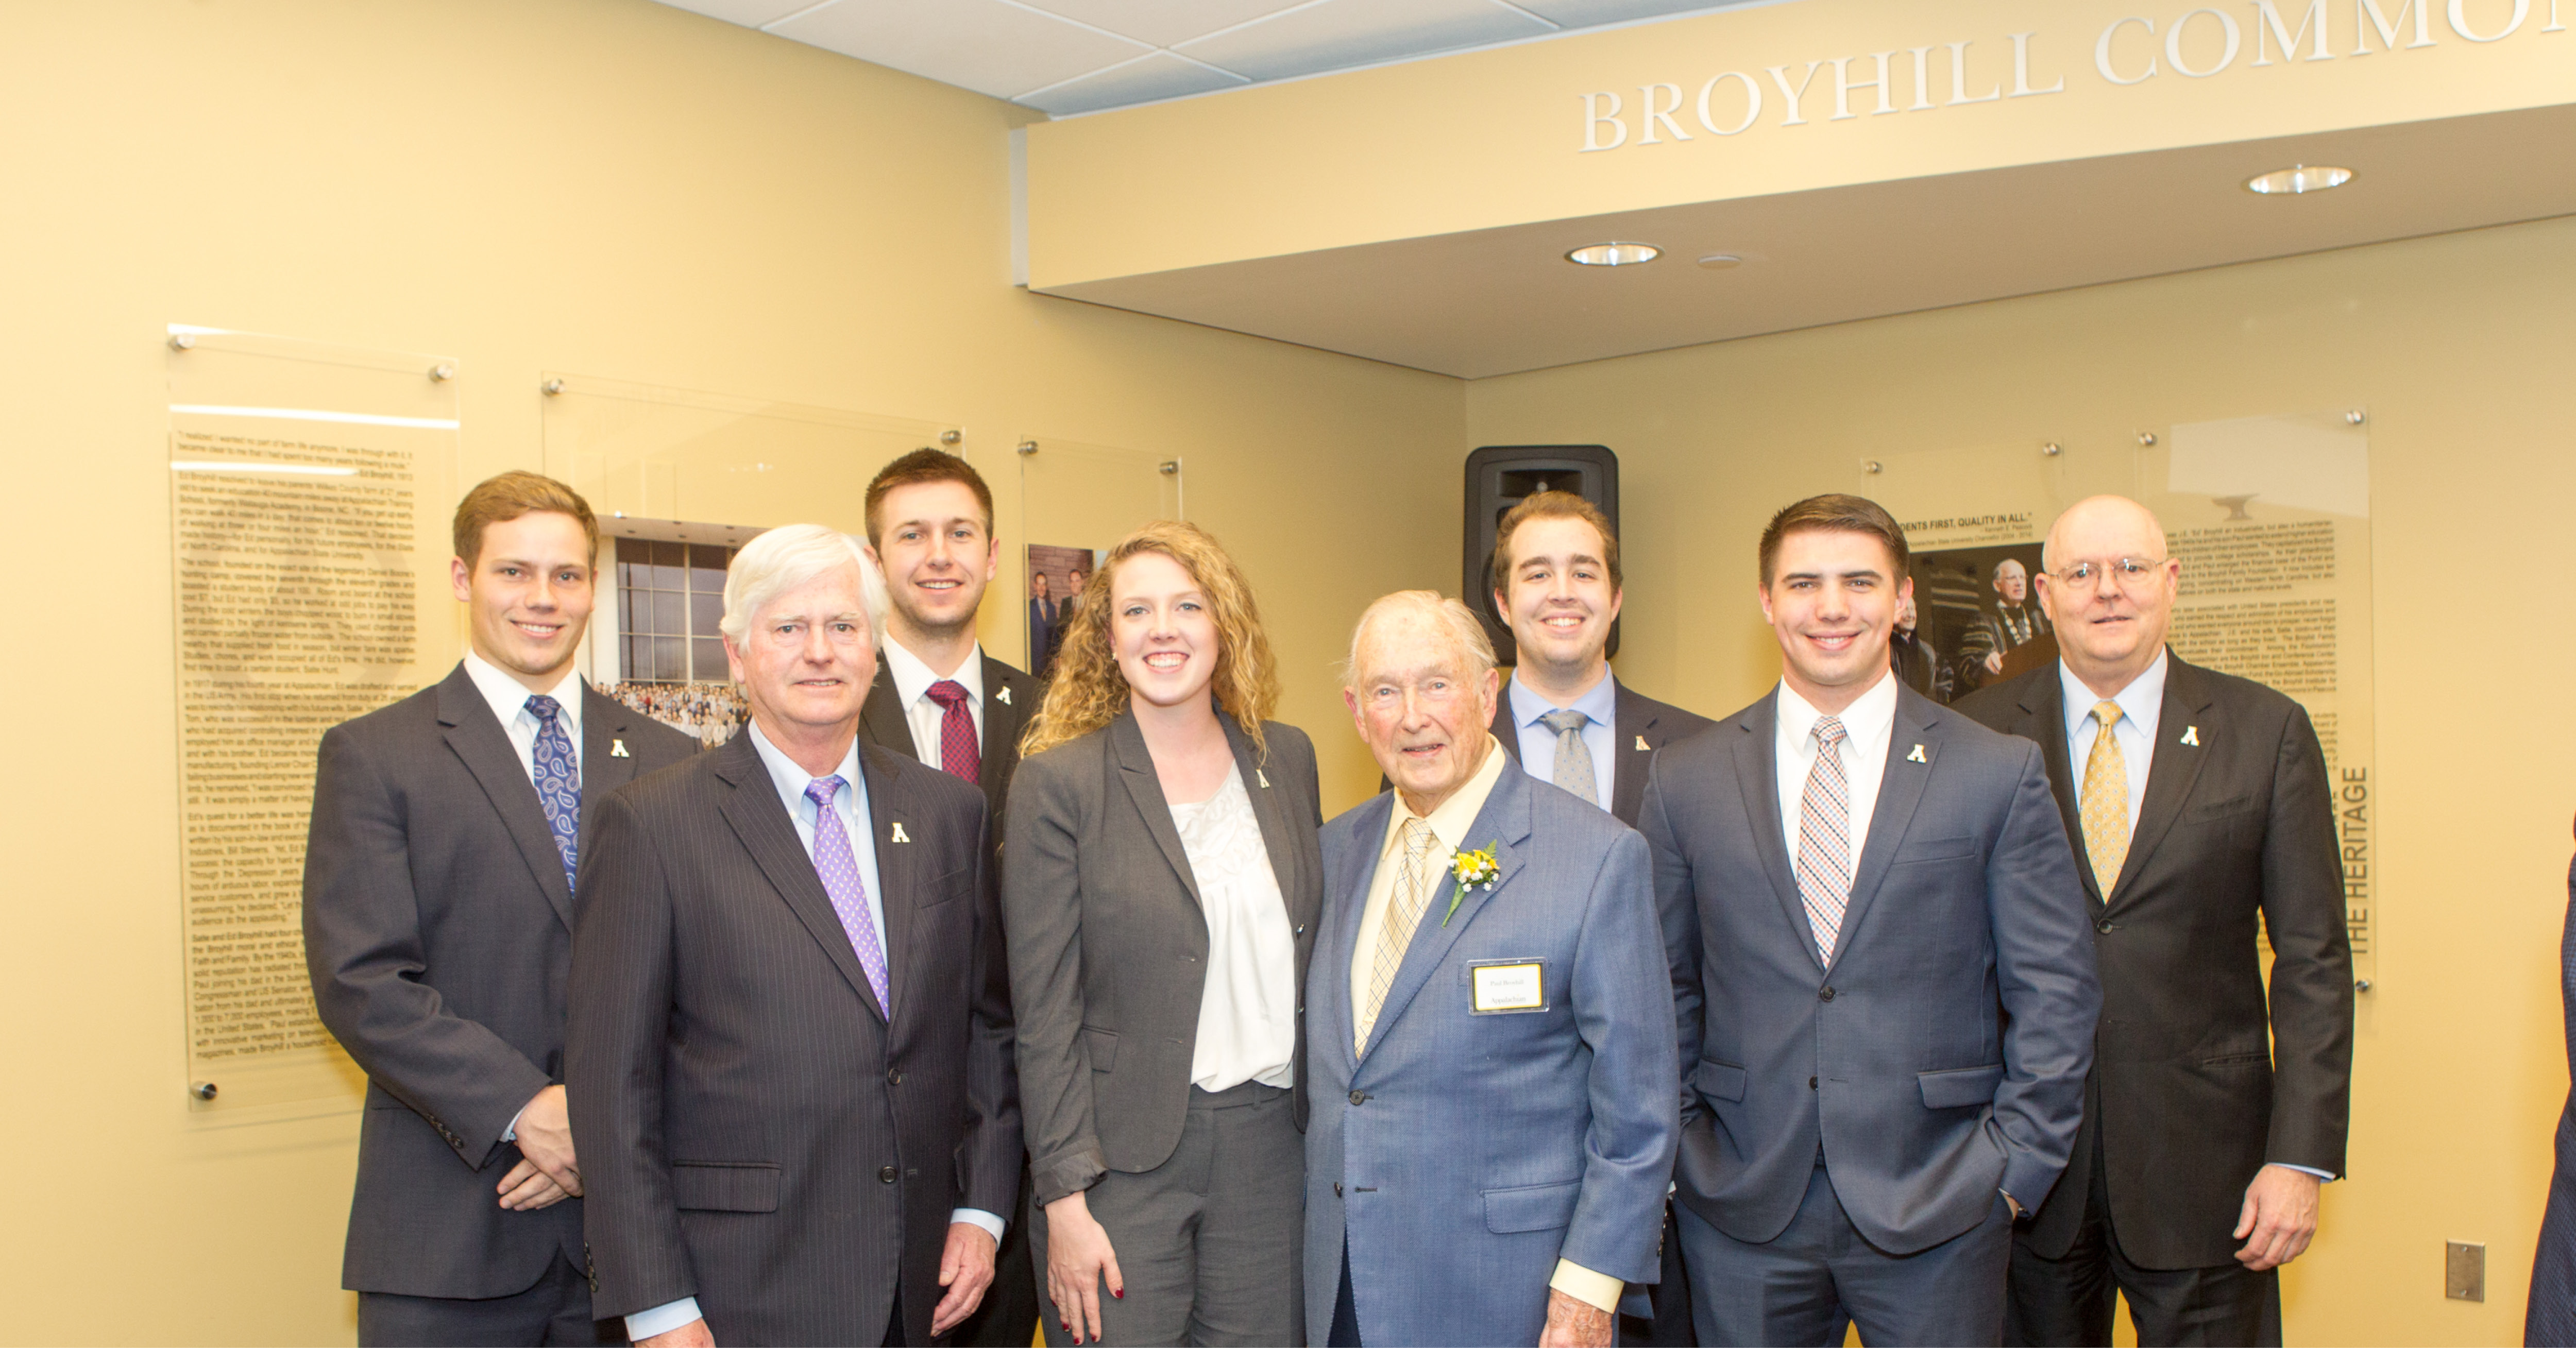 Paul Broyhill (center) stands with the current Broyhill Fellows and their advisors during the March 8 naming ceremony for the Broyhill Commons at Appalachian State University.